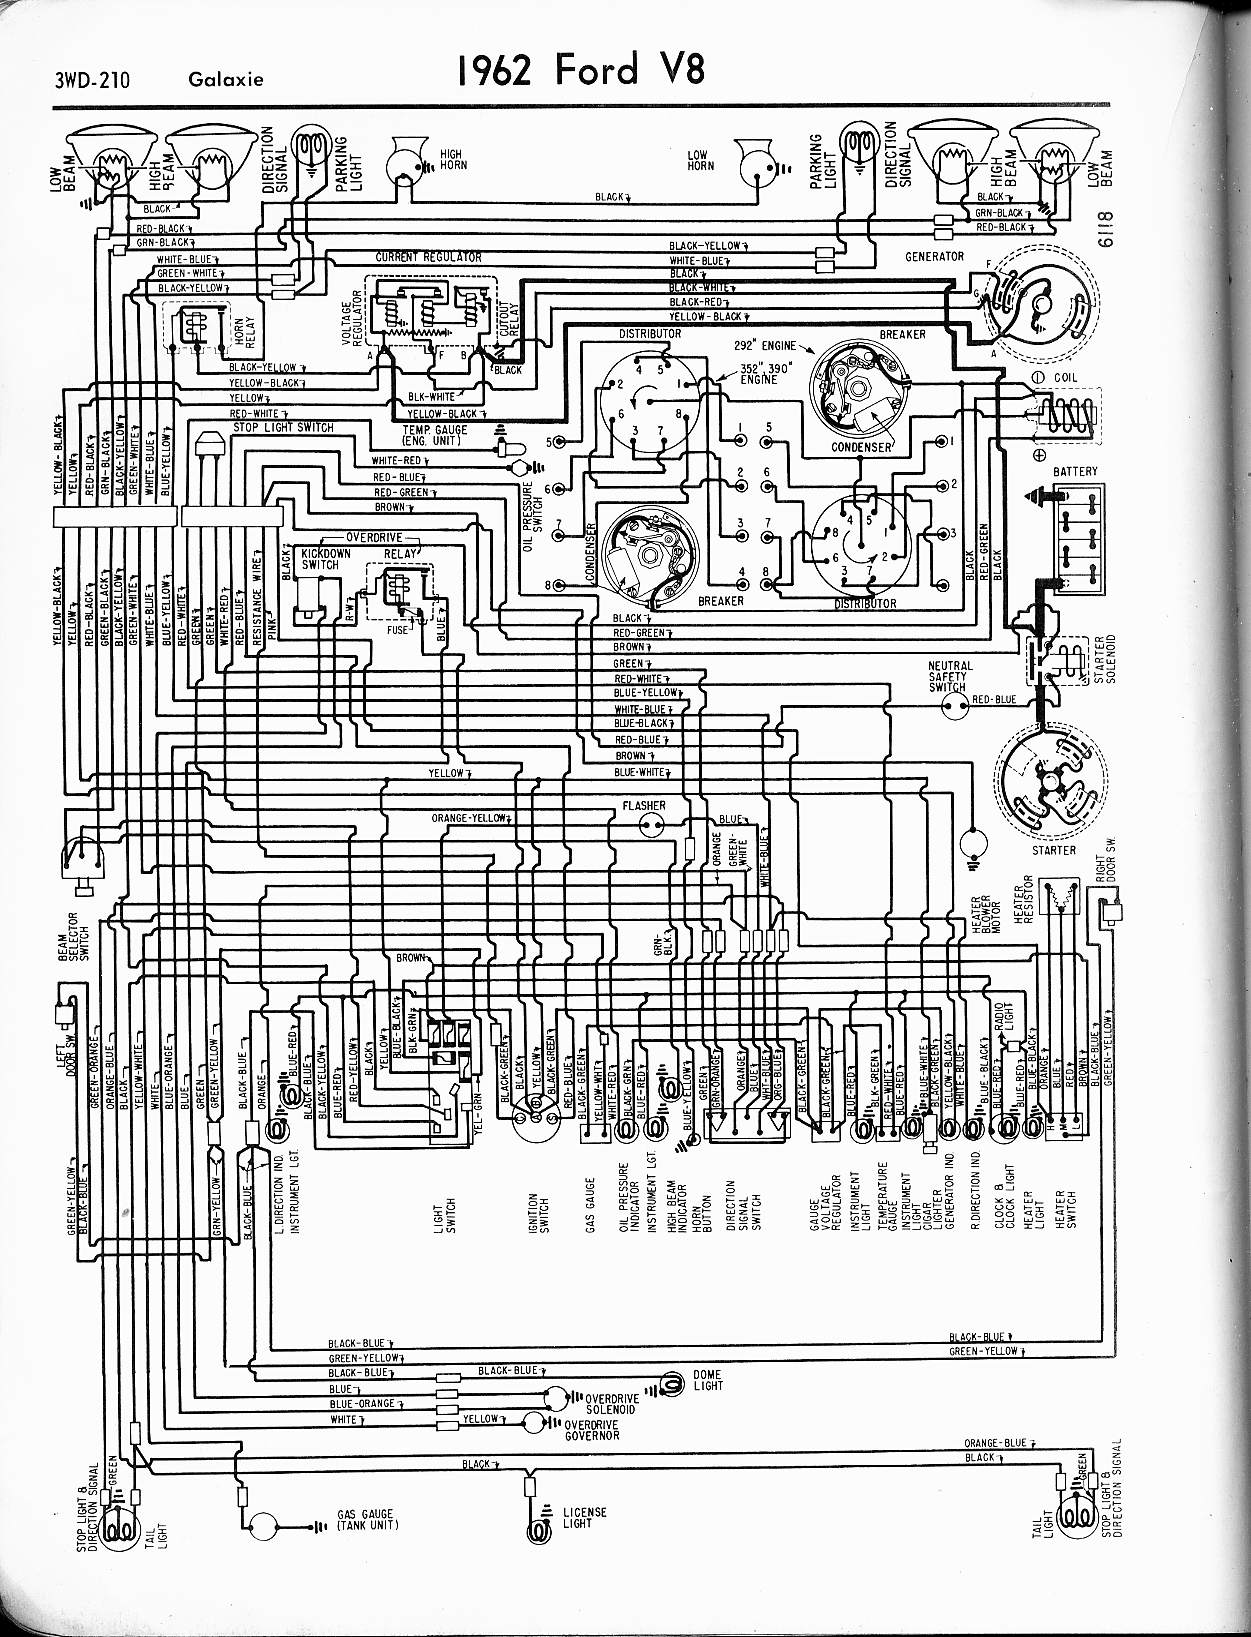 1961 thunderbird wiring diagram - wiring diagram book rub-link -  rub-link.prolocoisoletremiti.it  prolocoisoletremiti.it